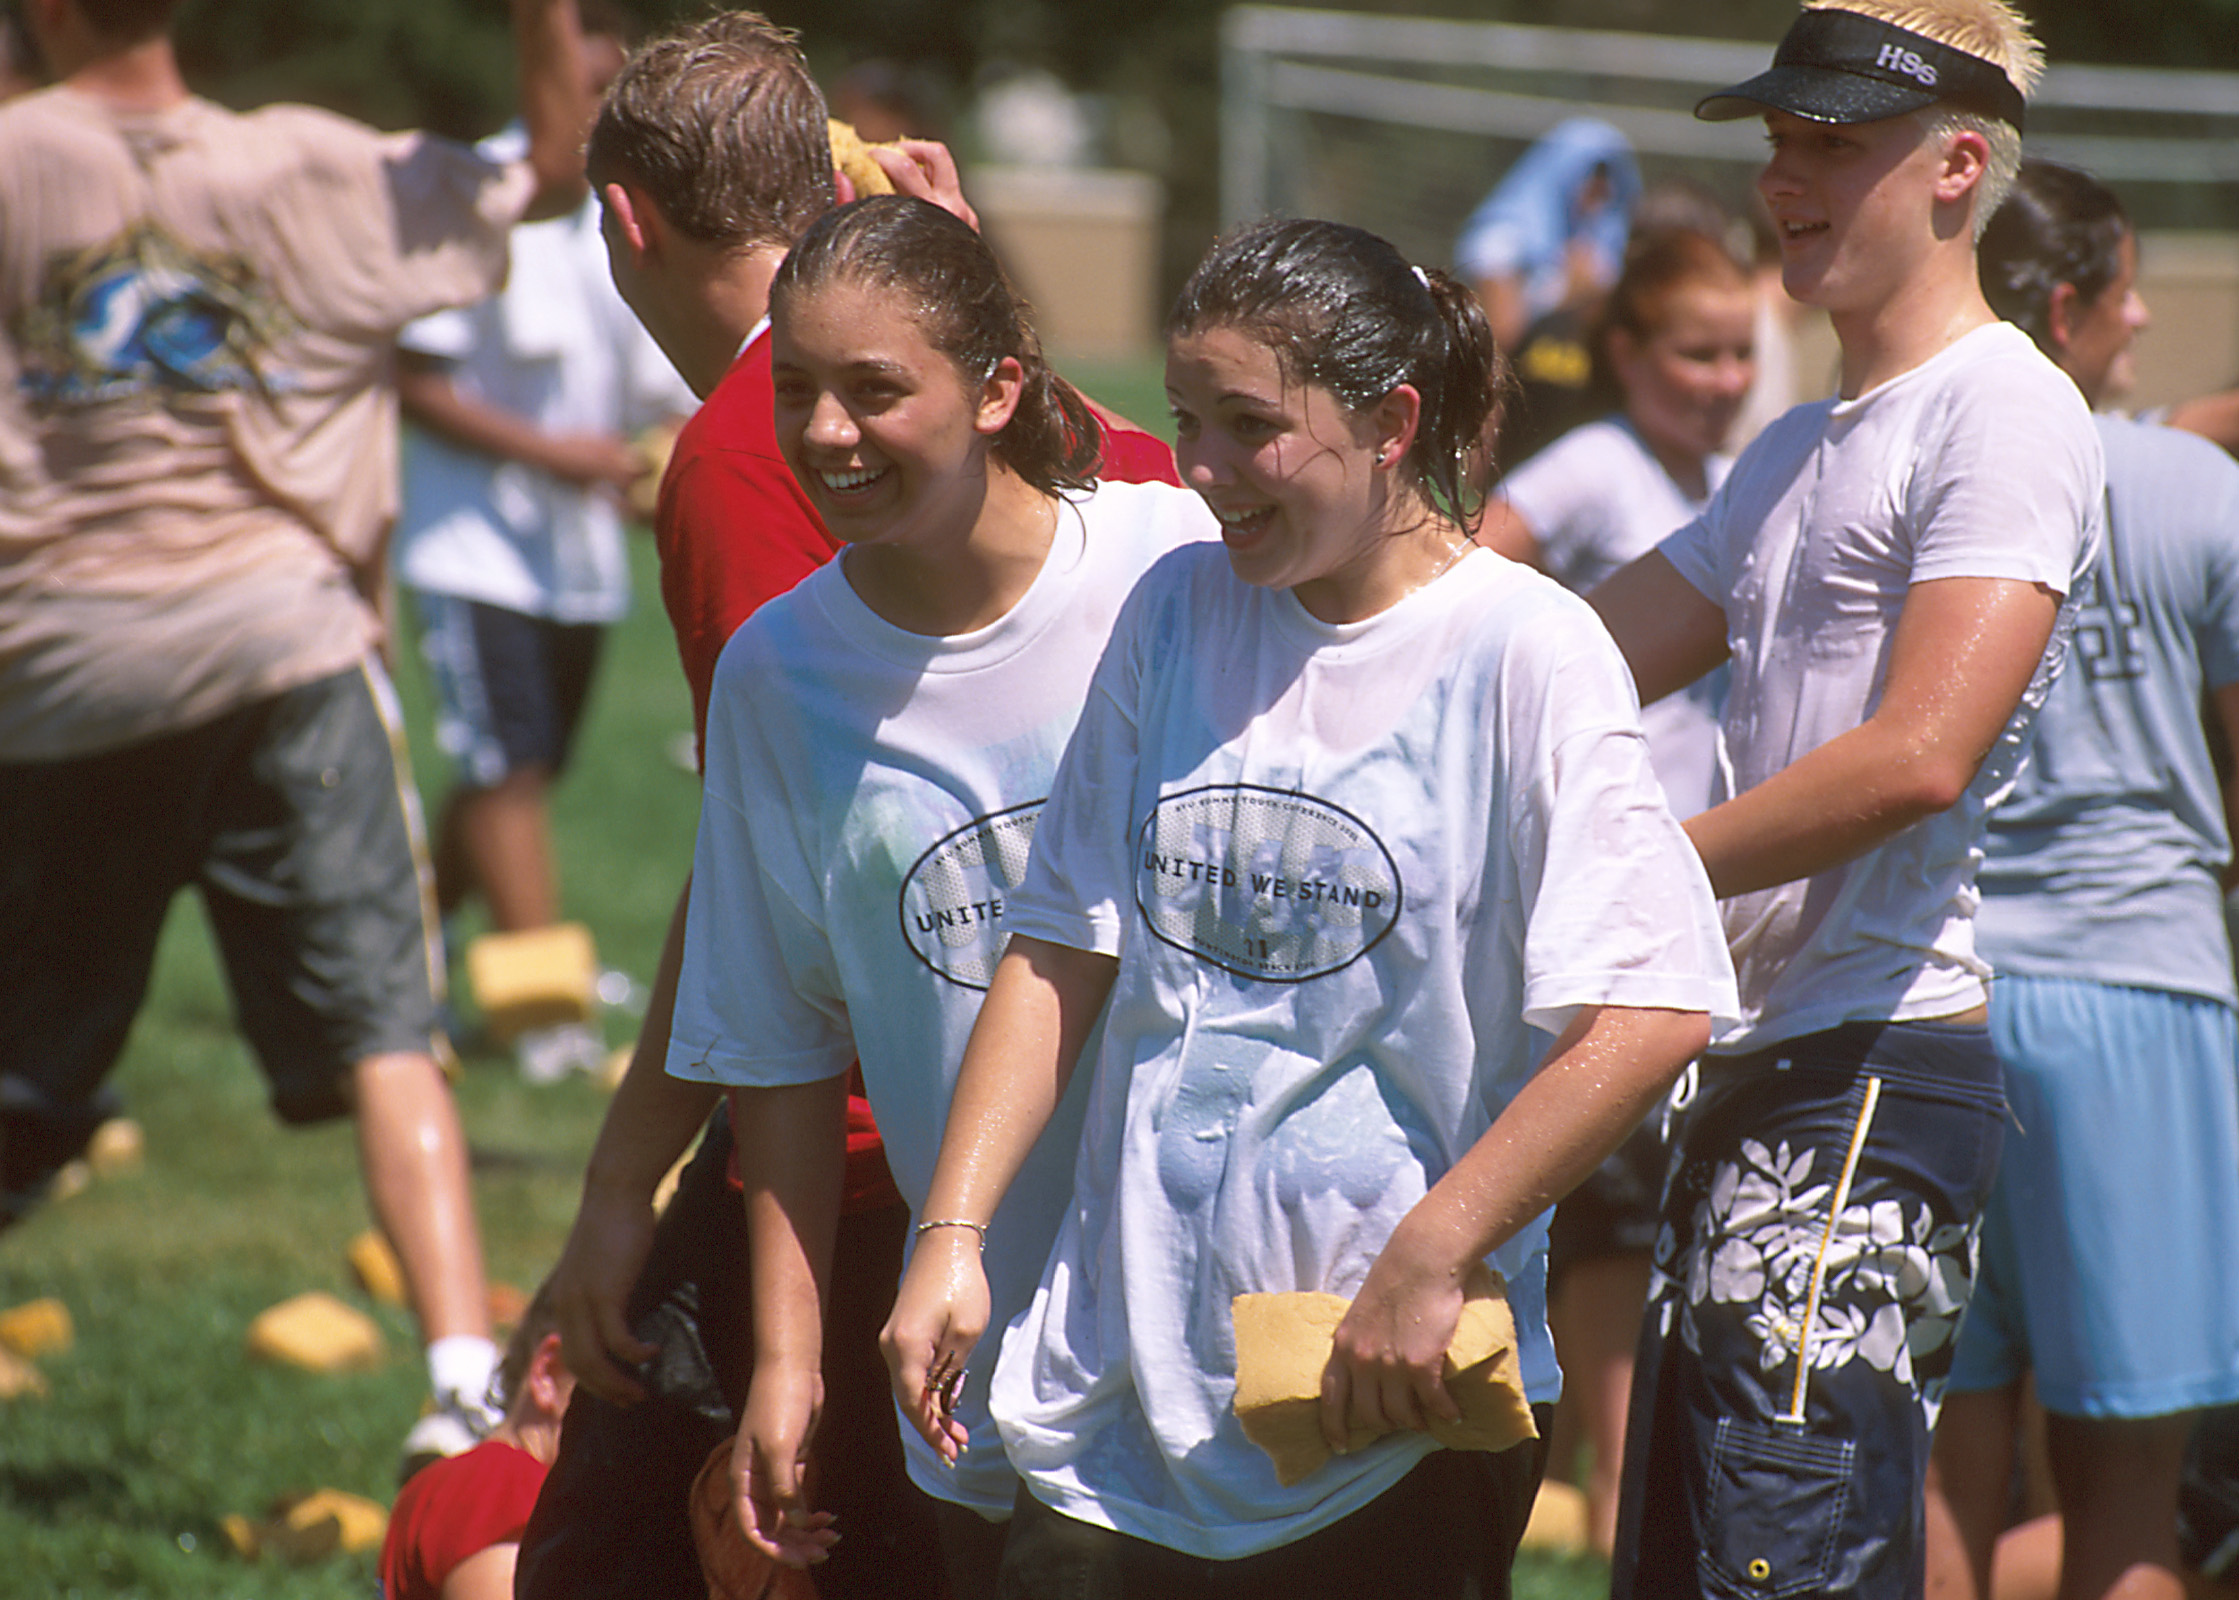 Young people get wet during an activity at Especially for Youth in 2000.